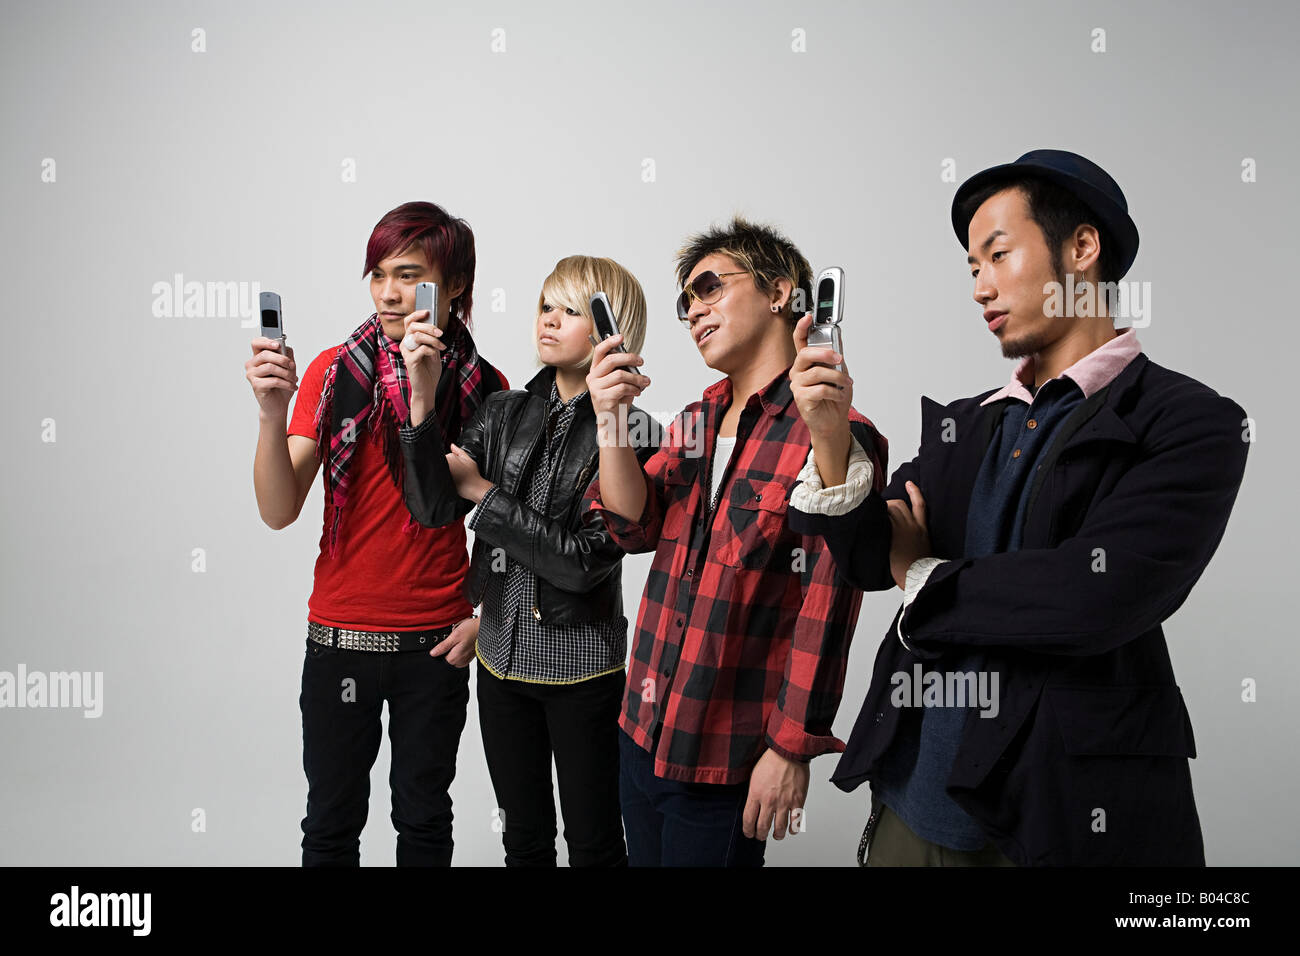 Four people using camera telephones - Stock Image